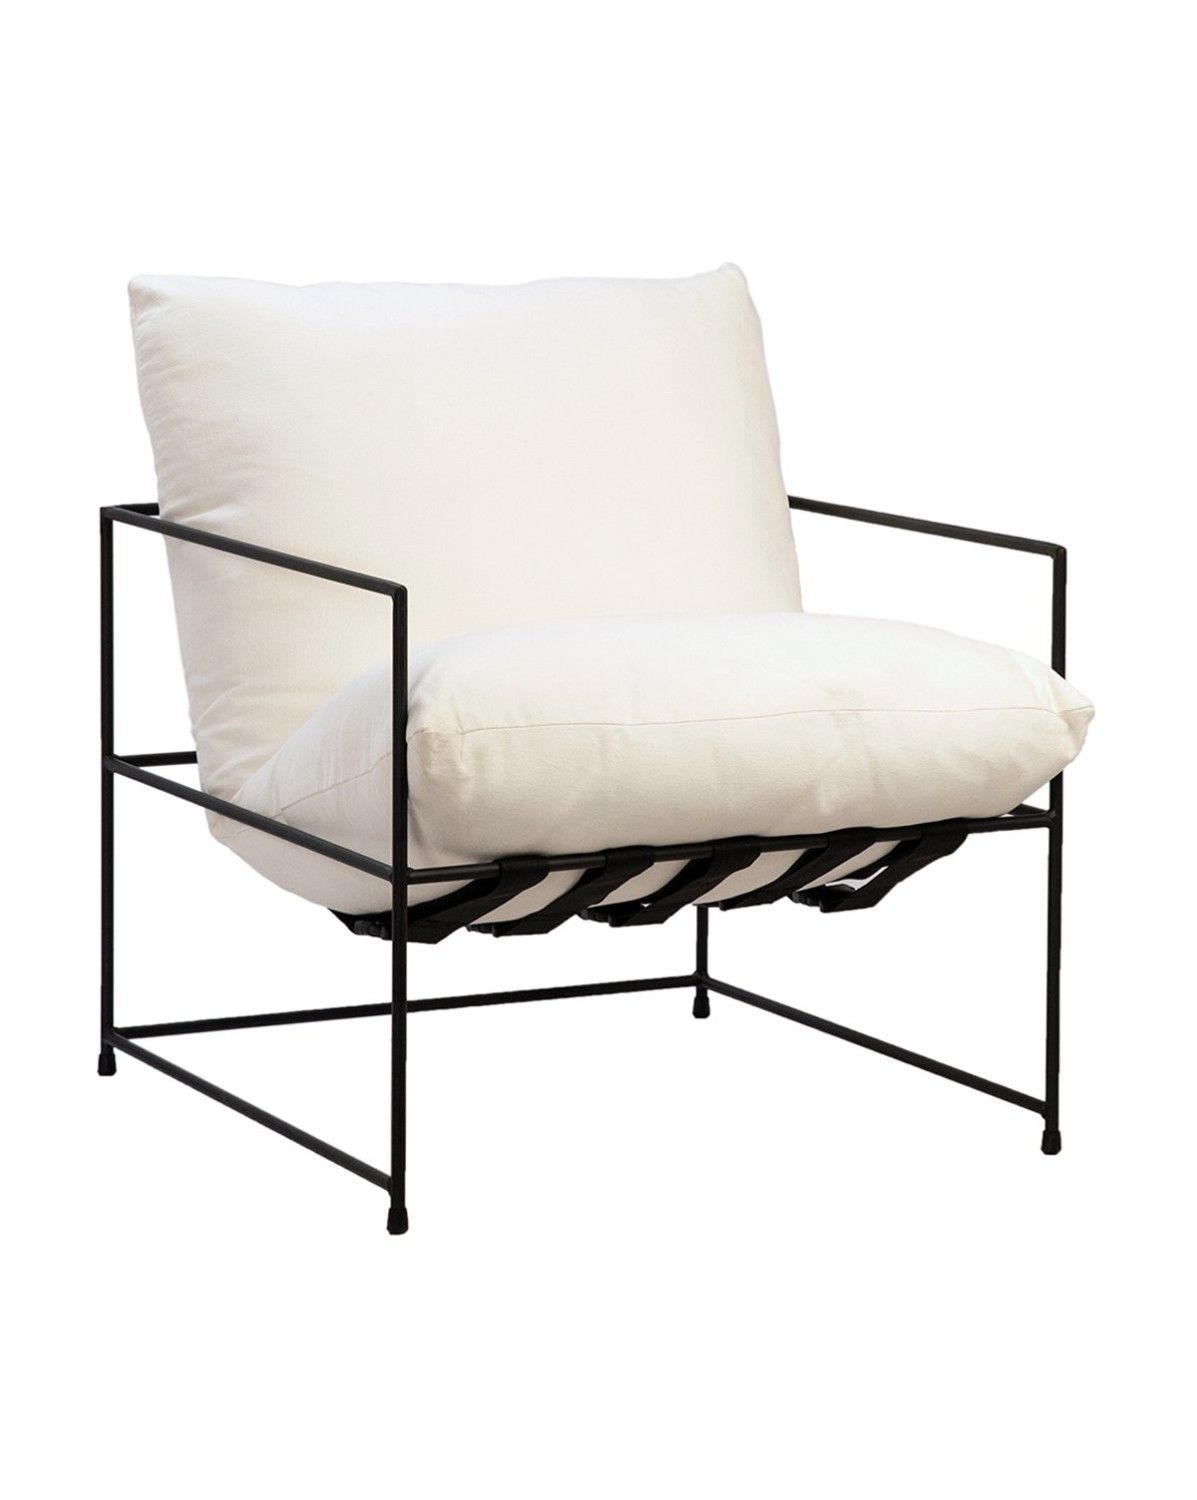 10 Most Popular Simple Chairs For Living Room